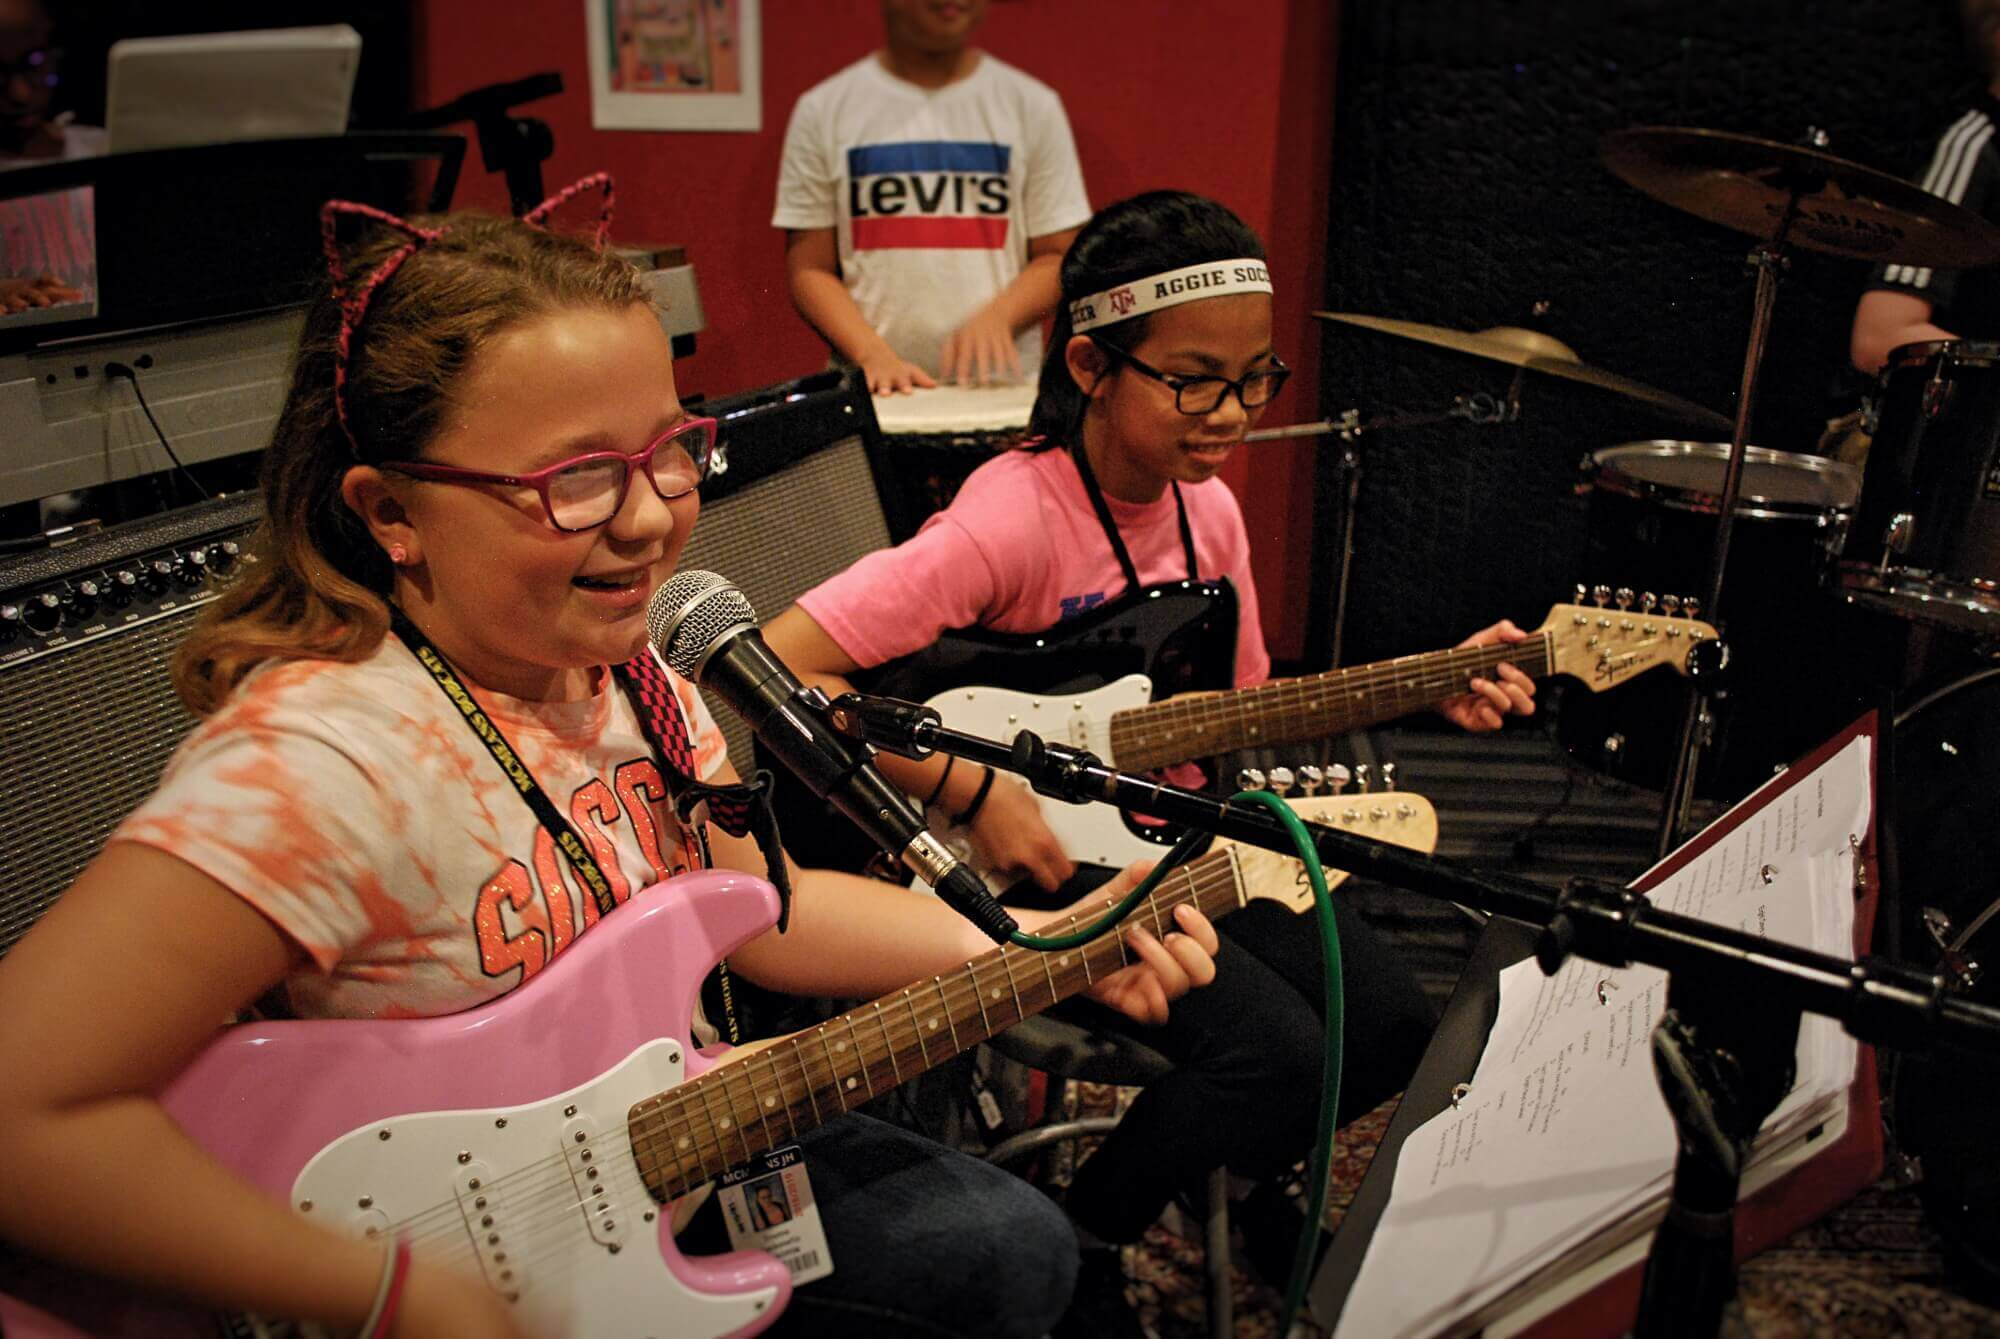 Rock 101 students enjoy working with their bandmates on their new songs.